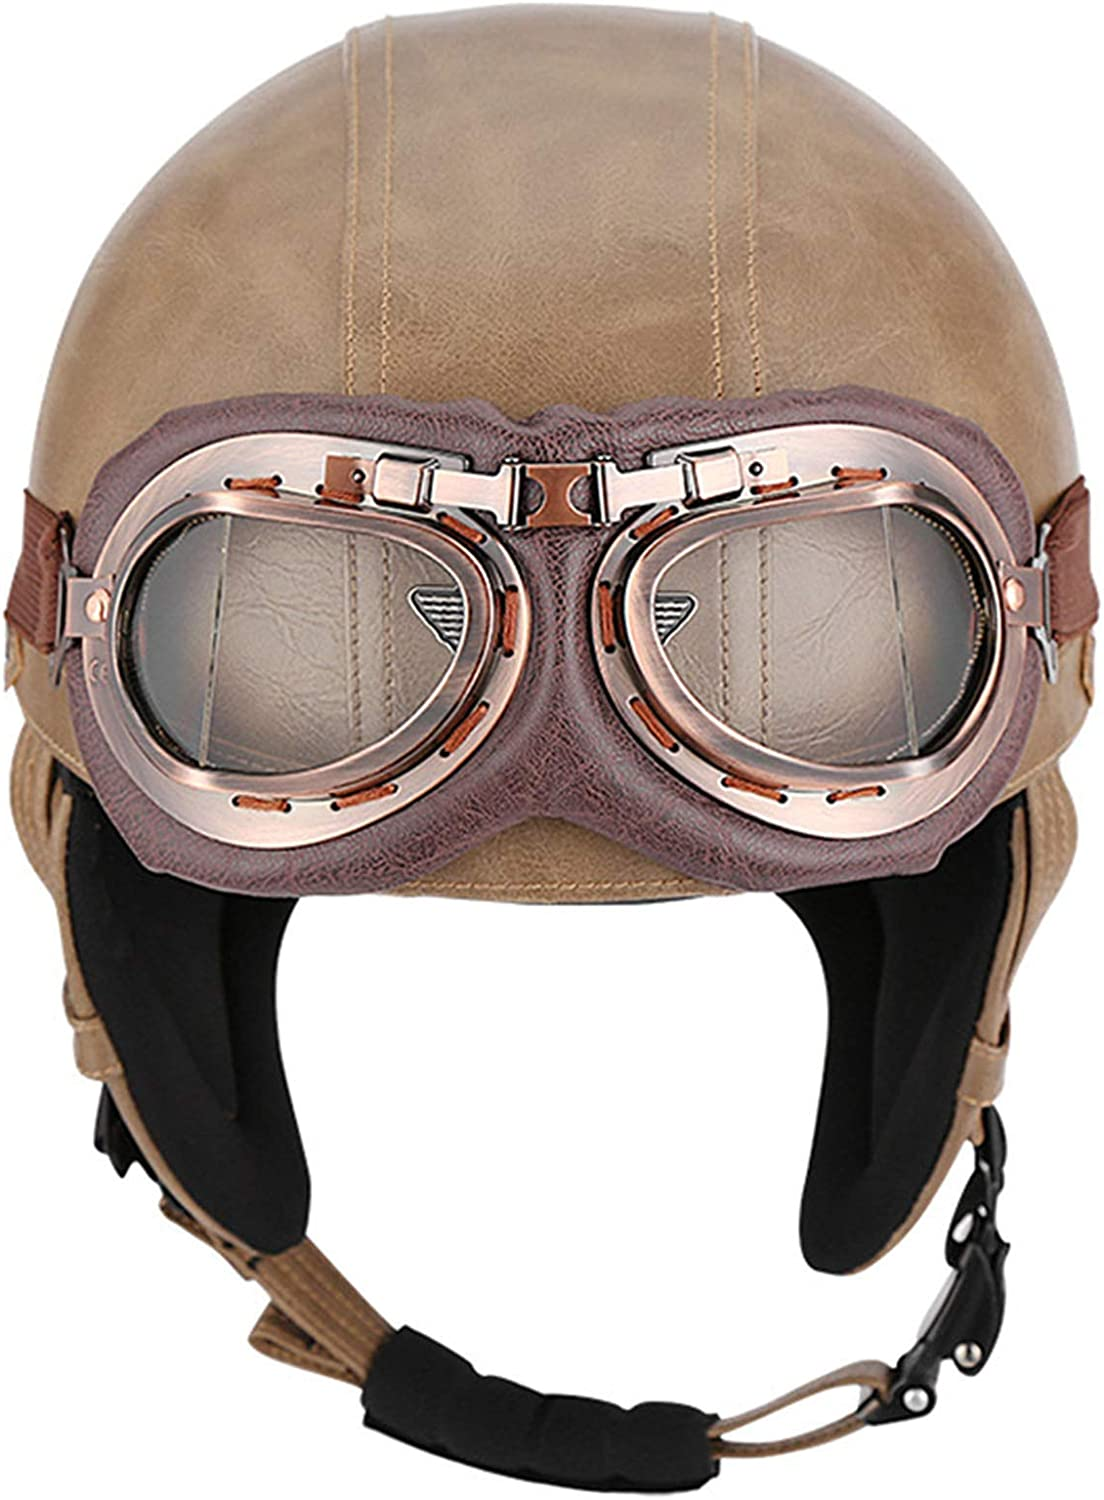 gift GAOZ Motorcycle Half Helmet with for Release Goggles Strap 2021 new Quick